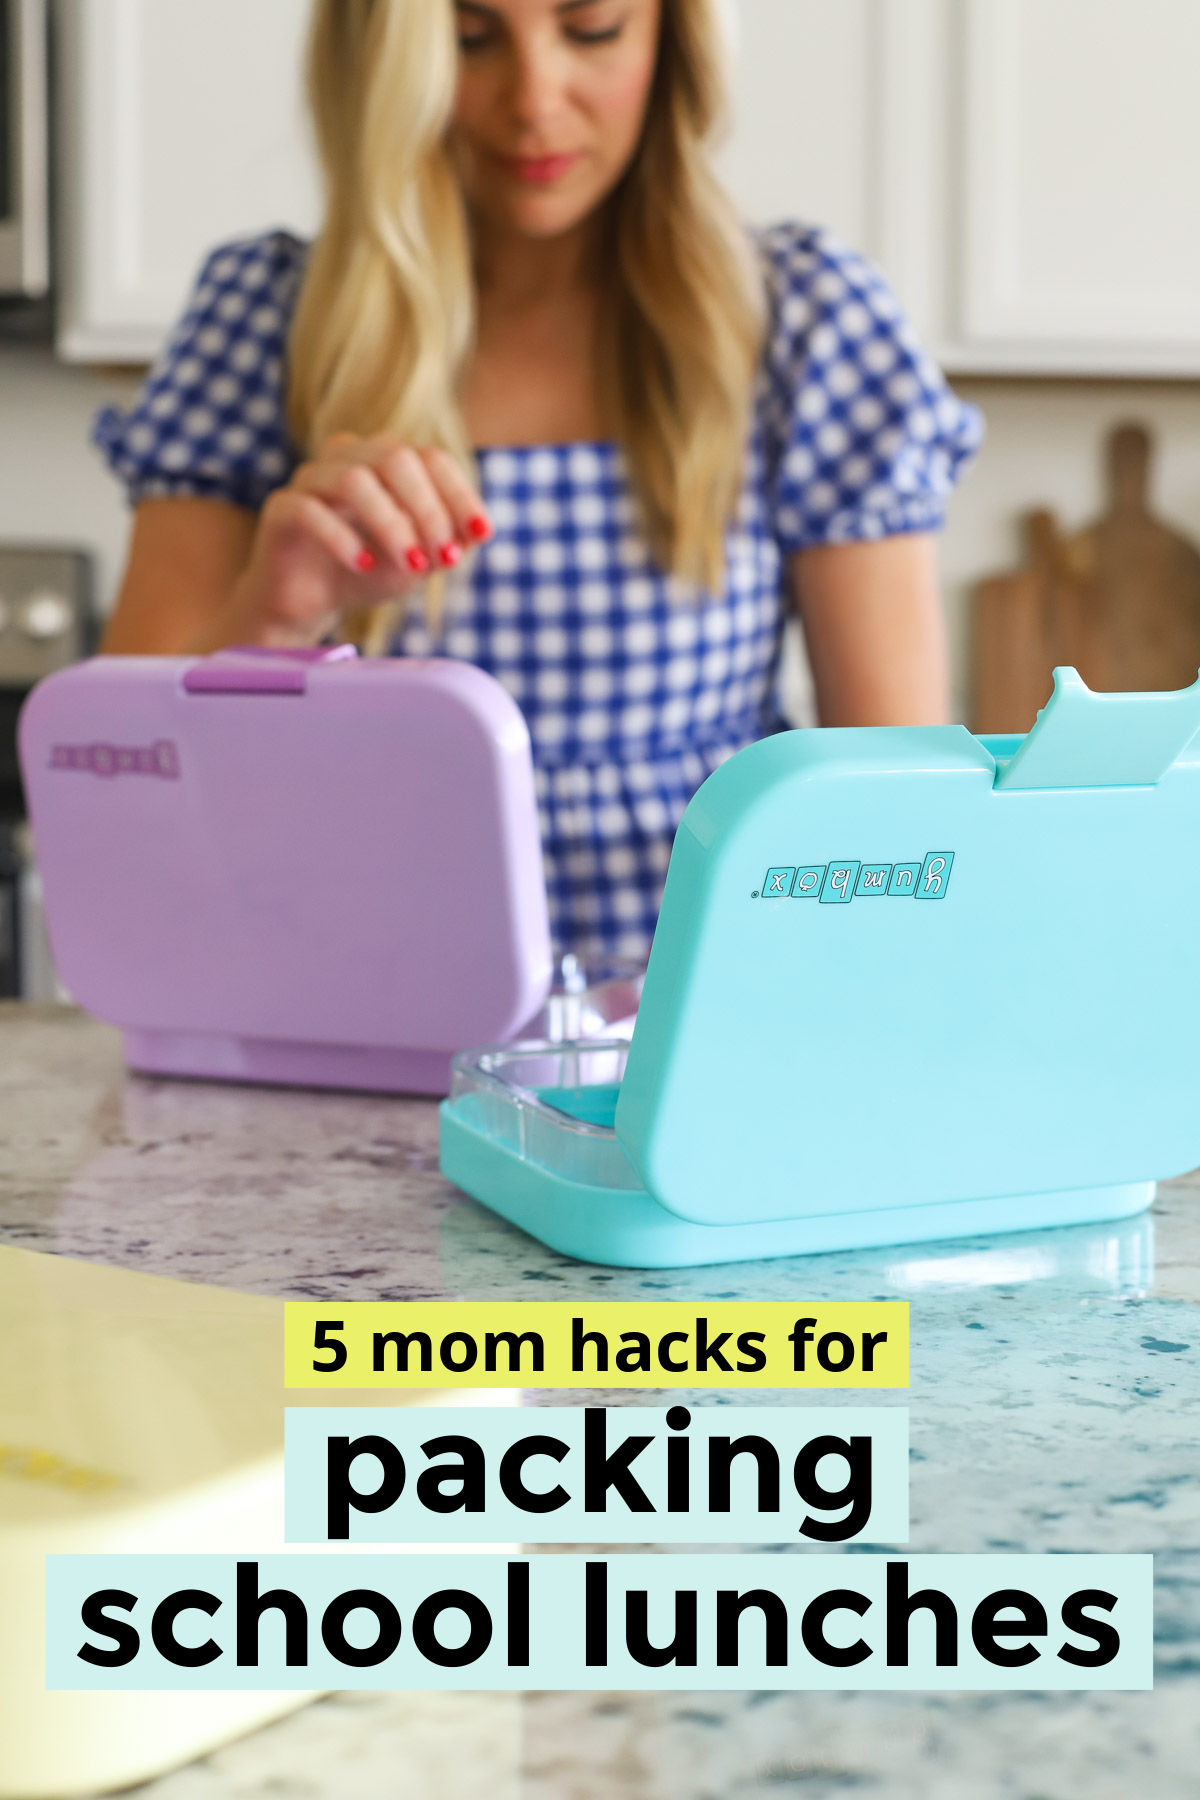 5 Hacks to Simplify Packing School Lunch! All our best school lunch tips and tricks for making school lunches fast and easy! // school lunches // school lunch ideas // mom hacks // time saving hacks // healthy lunches #packedlunch #schoollunch #momtip #backtoschool #lunch